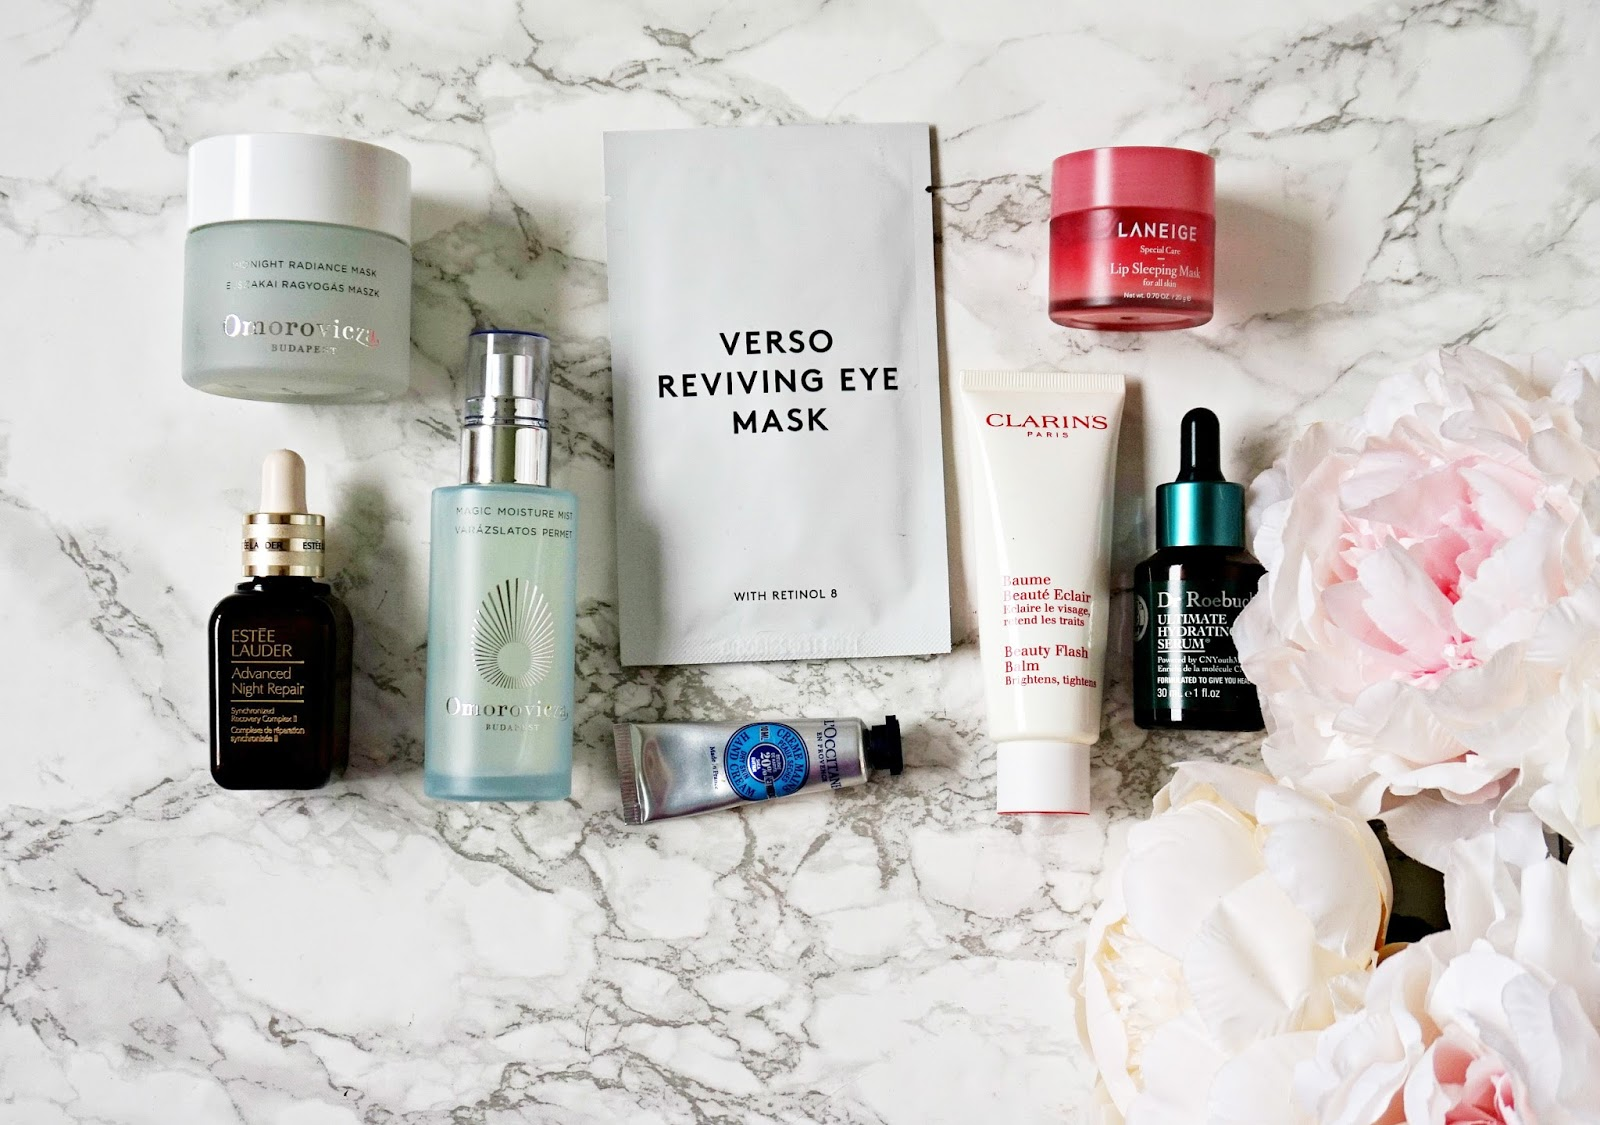 Verso Reviving Eye Mask, Clarins Beauty Flash Balm, Omorovicza Magic Moisture Mist, Laneige Lip Mask, Omorovicza, Midnight Radiance, Estée Lauder Advanced Night Repair, Dr Roebuck's Ultimate Hydrating Serum, L'occitane, Hand Cream